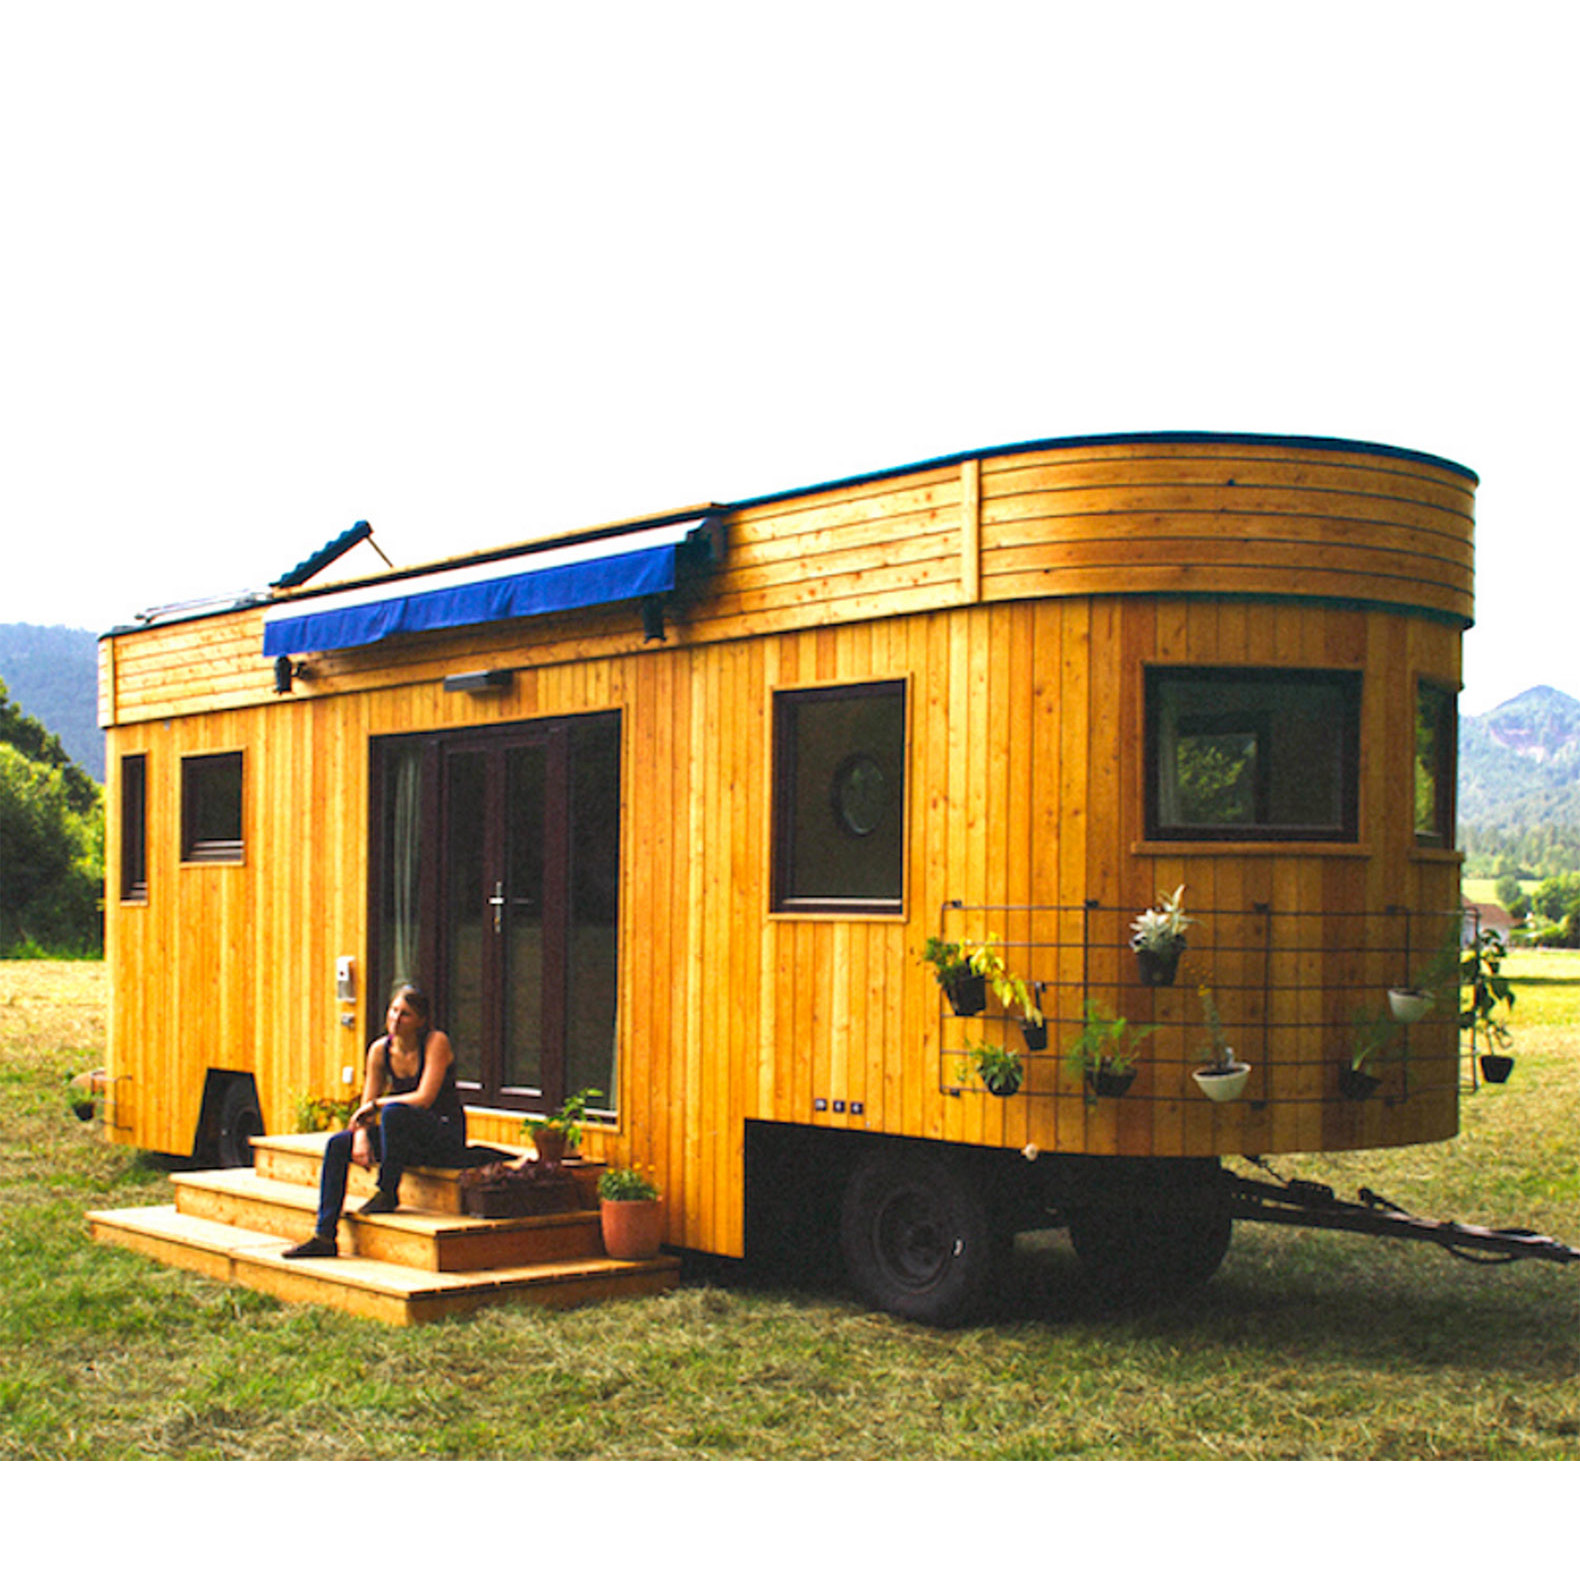 European Luxury Mini Movable Wood Houses Modular Small Mobile Homes Tiny Houses Prefab Trailer Homes For Sale Buy Cheap Prefab Homes For Sale Cheap Prefabricated Modular Homes For Sale Wooden Prefab Homes Product